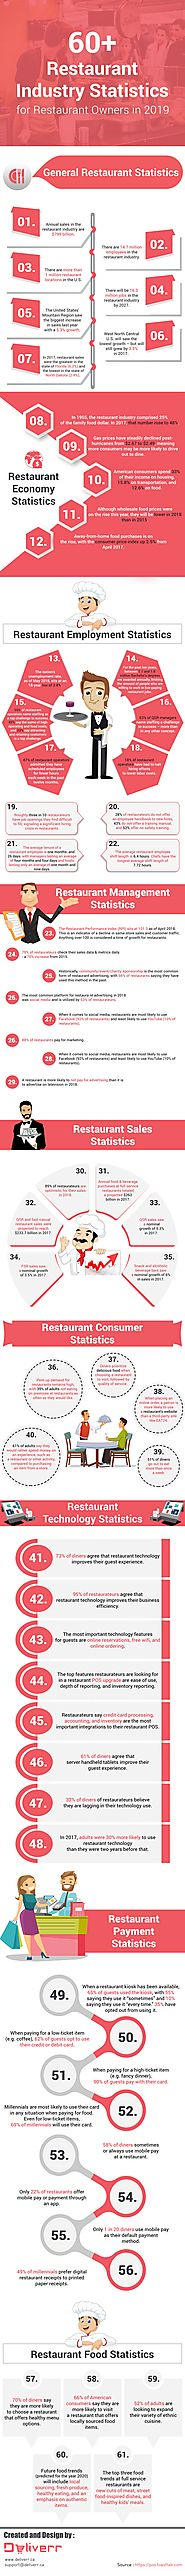 Local Sourcing and Healthy Eating To Be The Food Trends of The Future (Infographic)